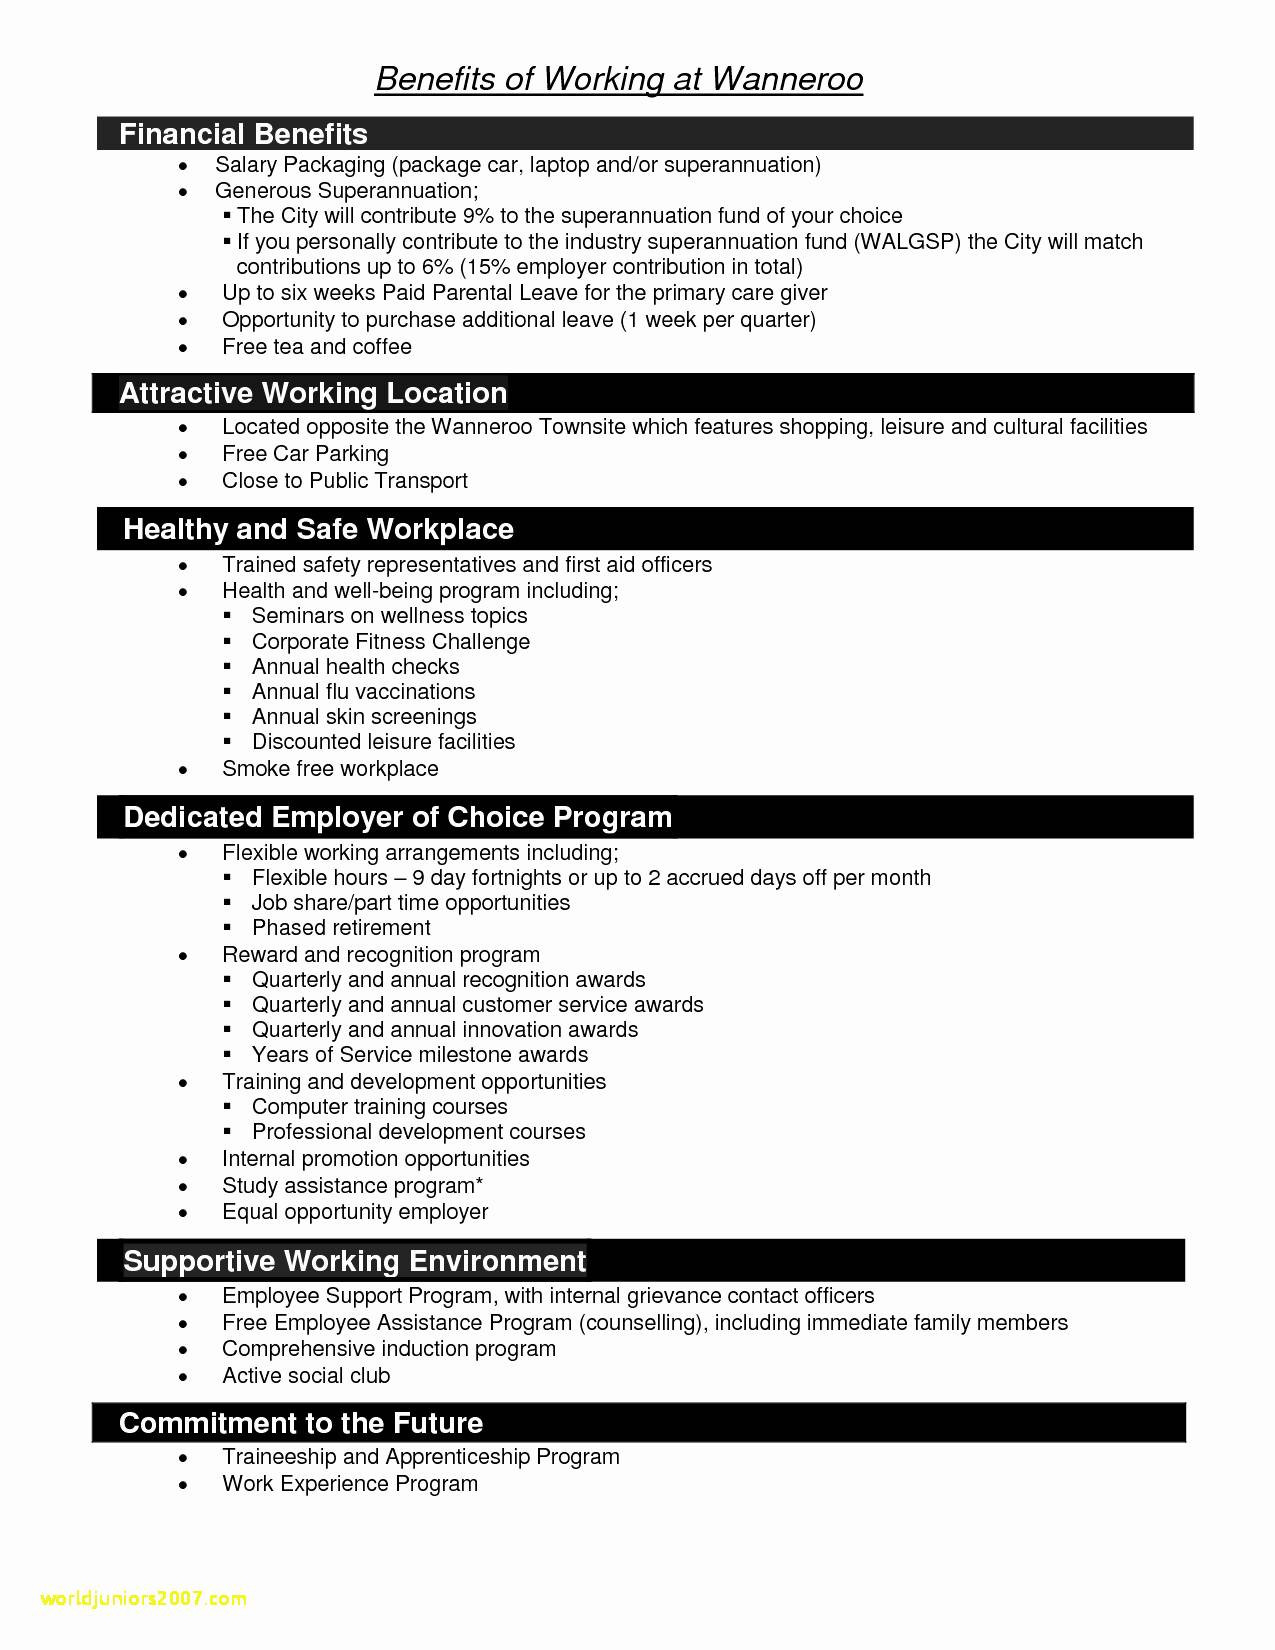 Careercup Resume Template - Career Cup Resume Talktomartyb